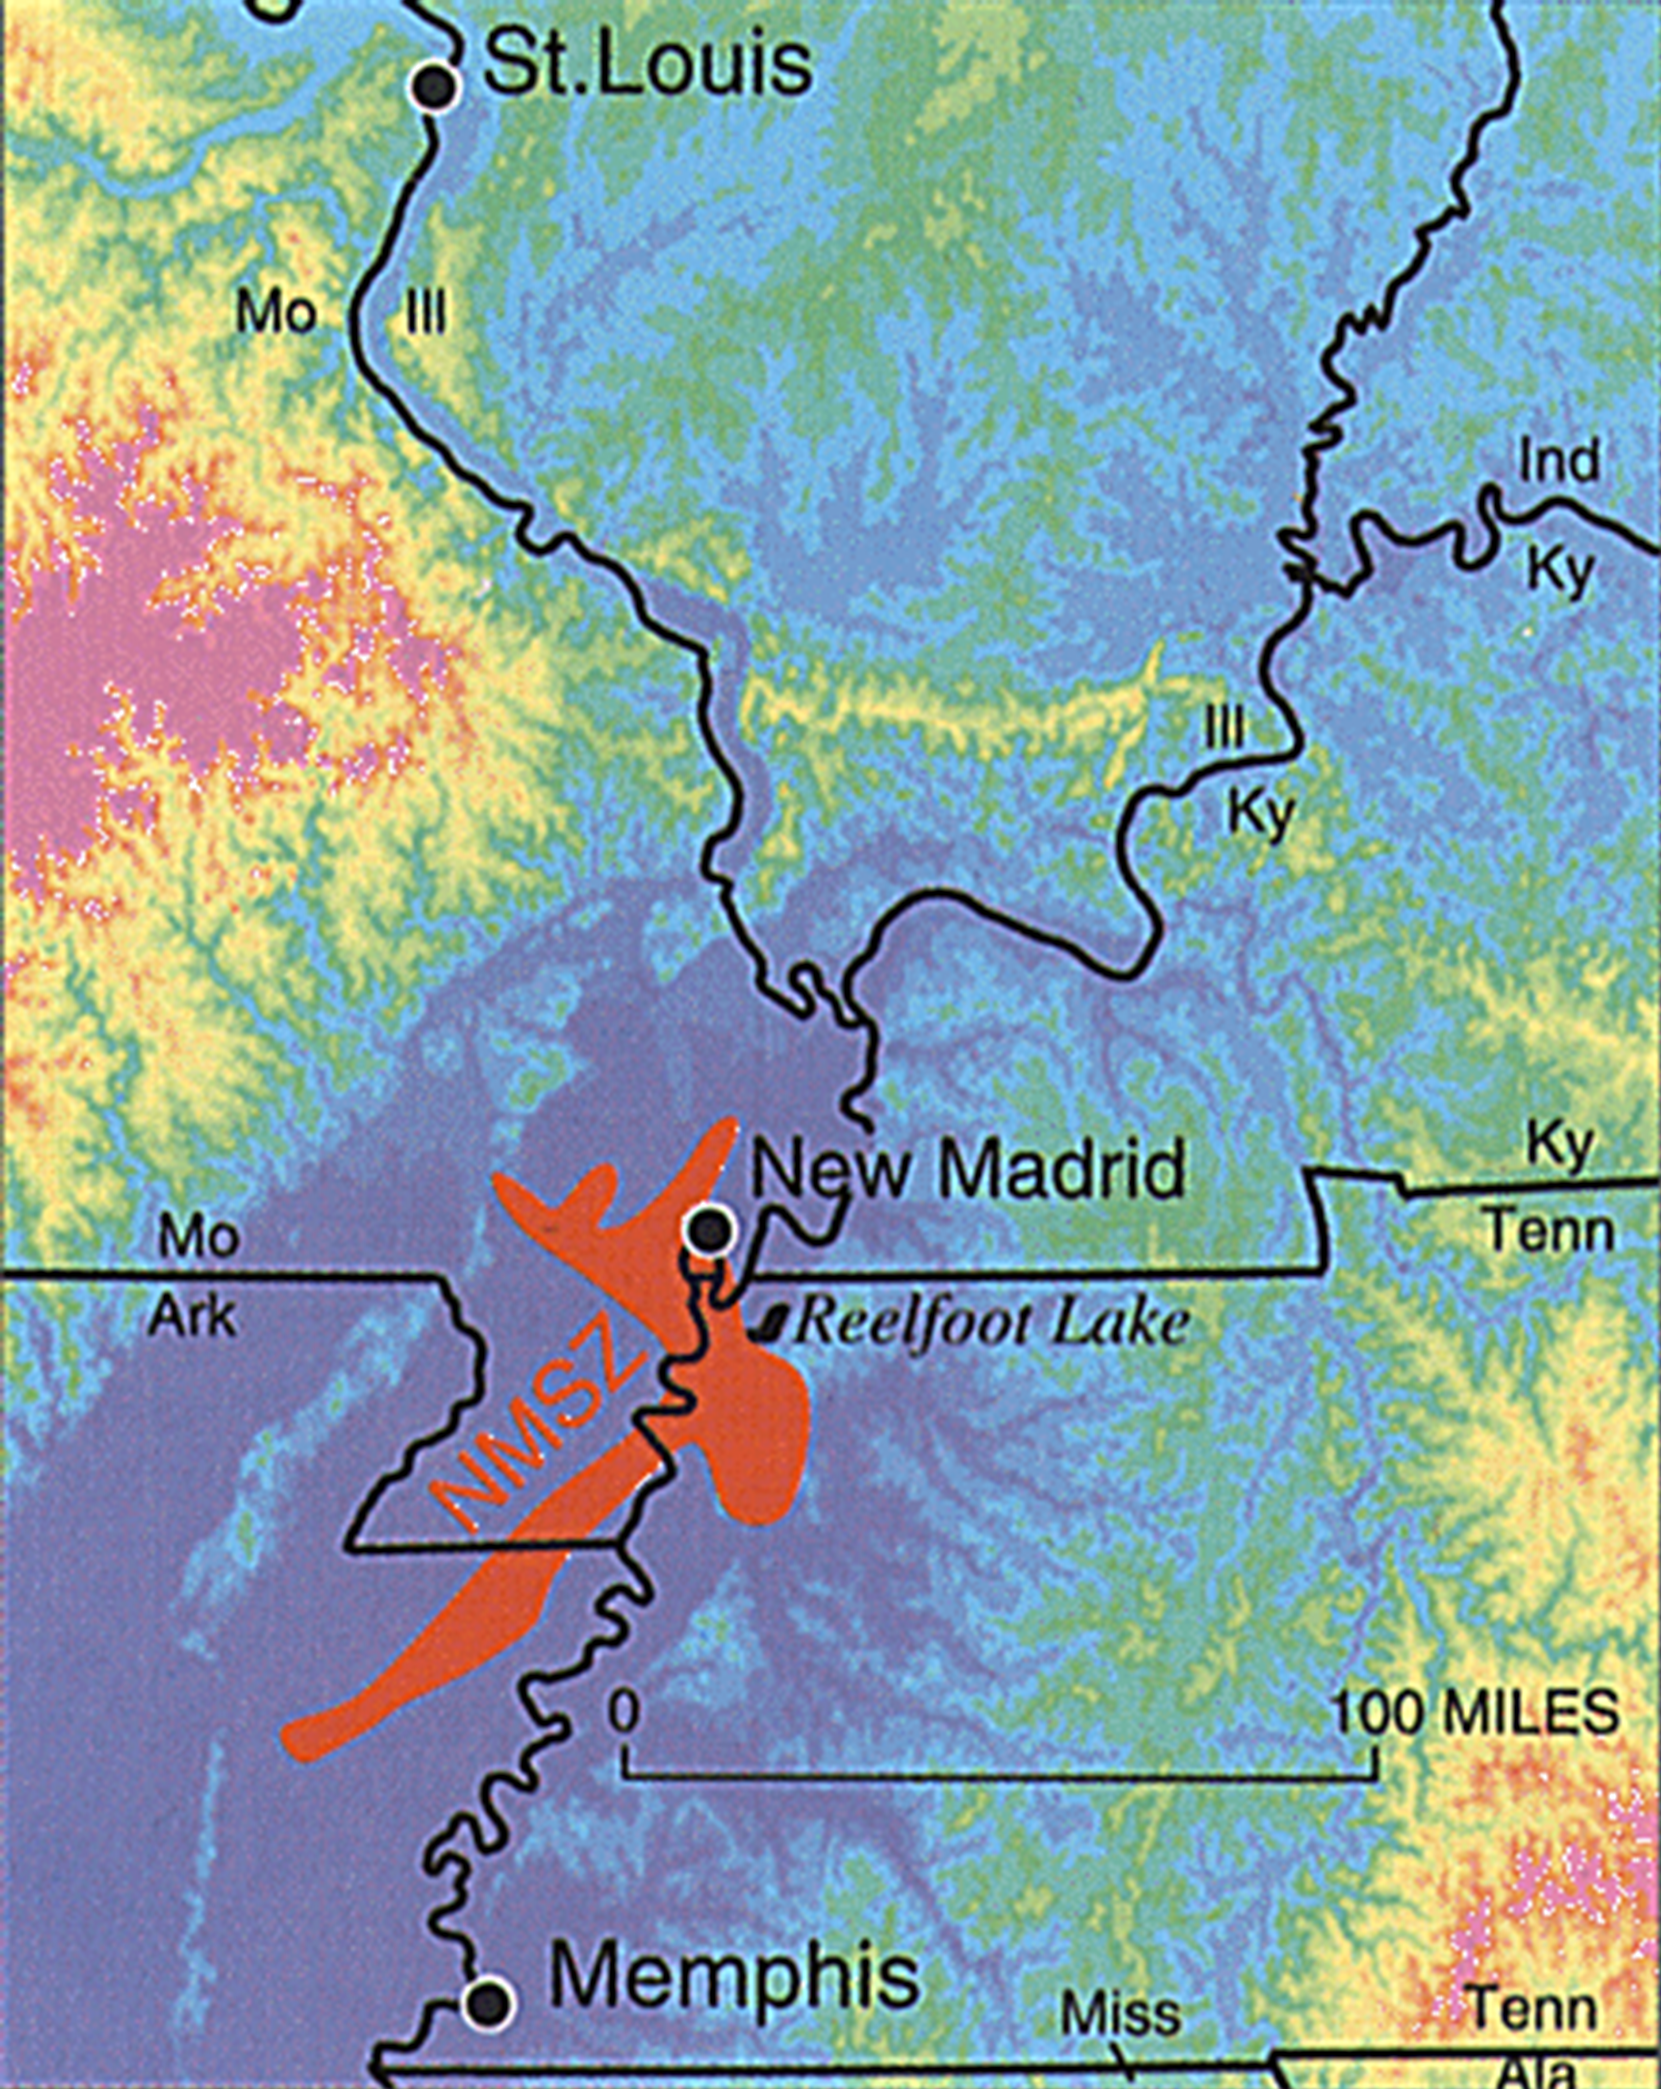 New Madrid Seismic Zone map; Courtesy of the U.S. Geological Survey